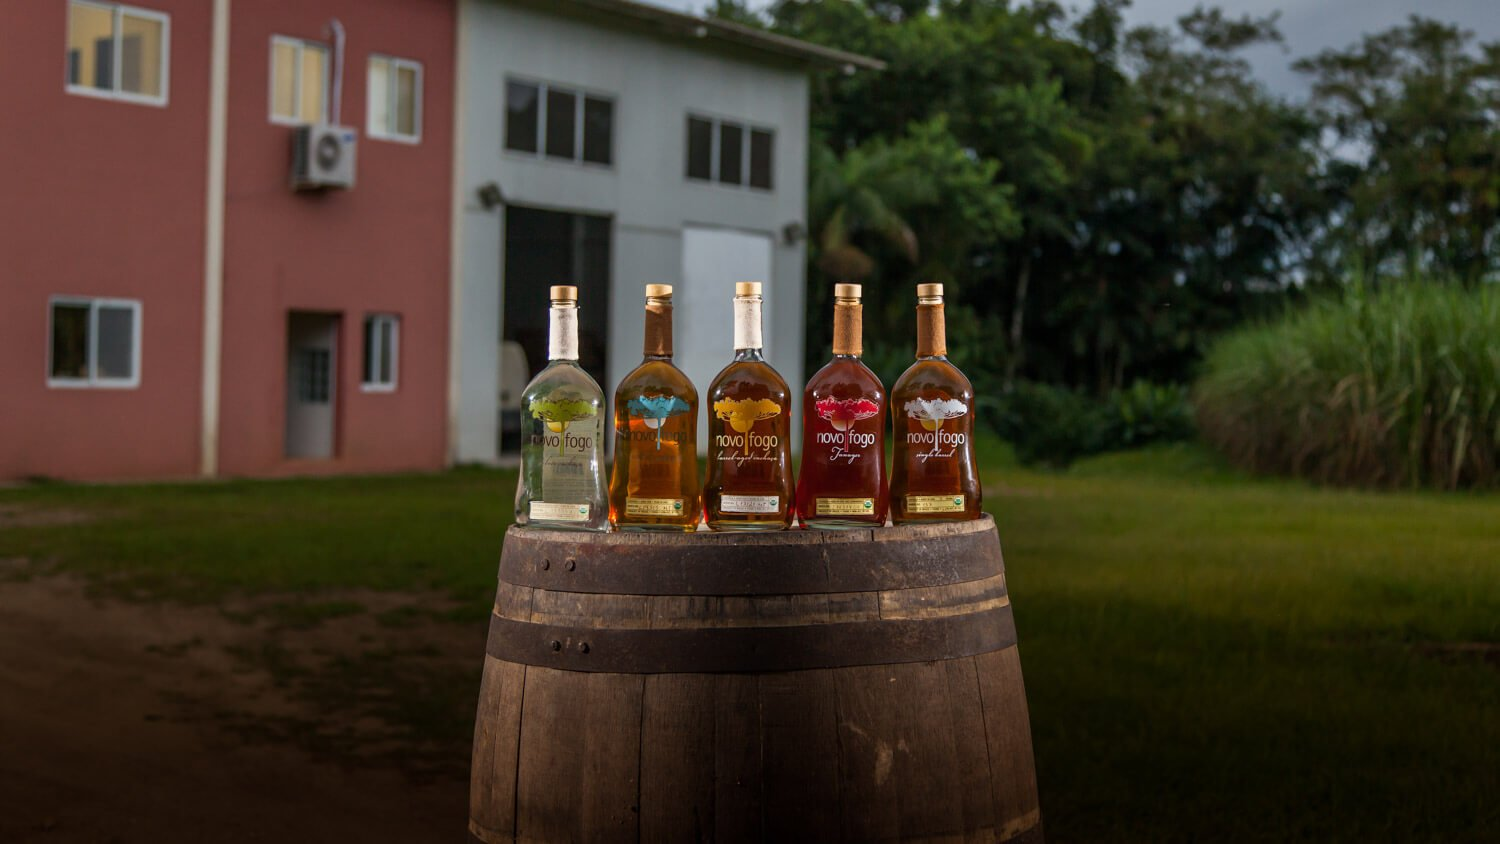 Novo Fogo Cachaça launches distribution in Europe - What's Shakin' week of June 19